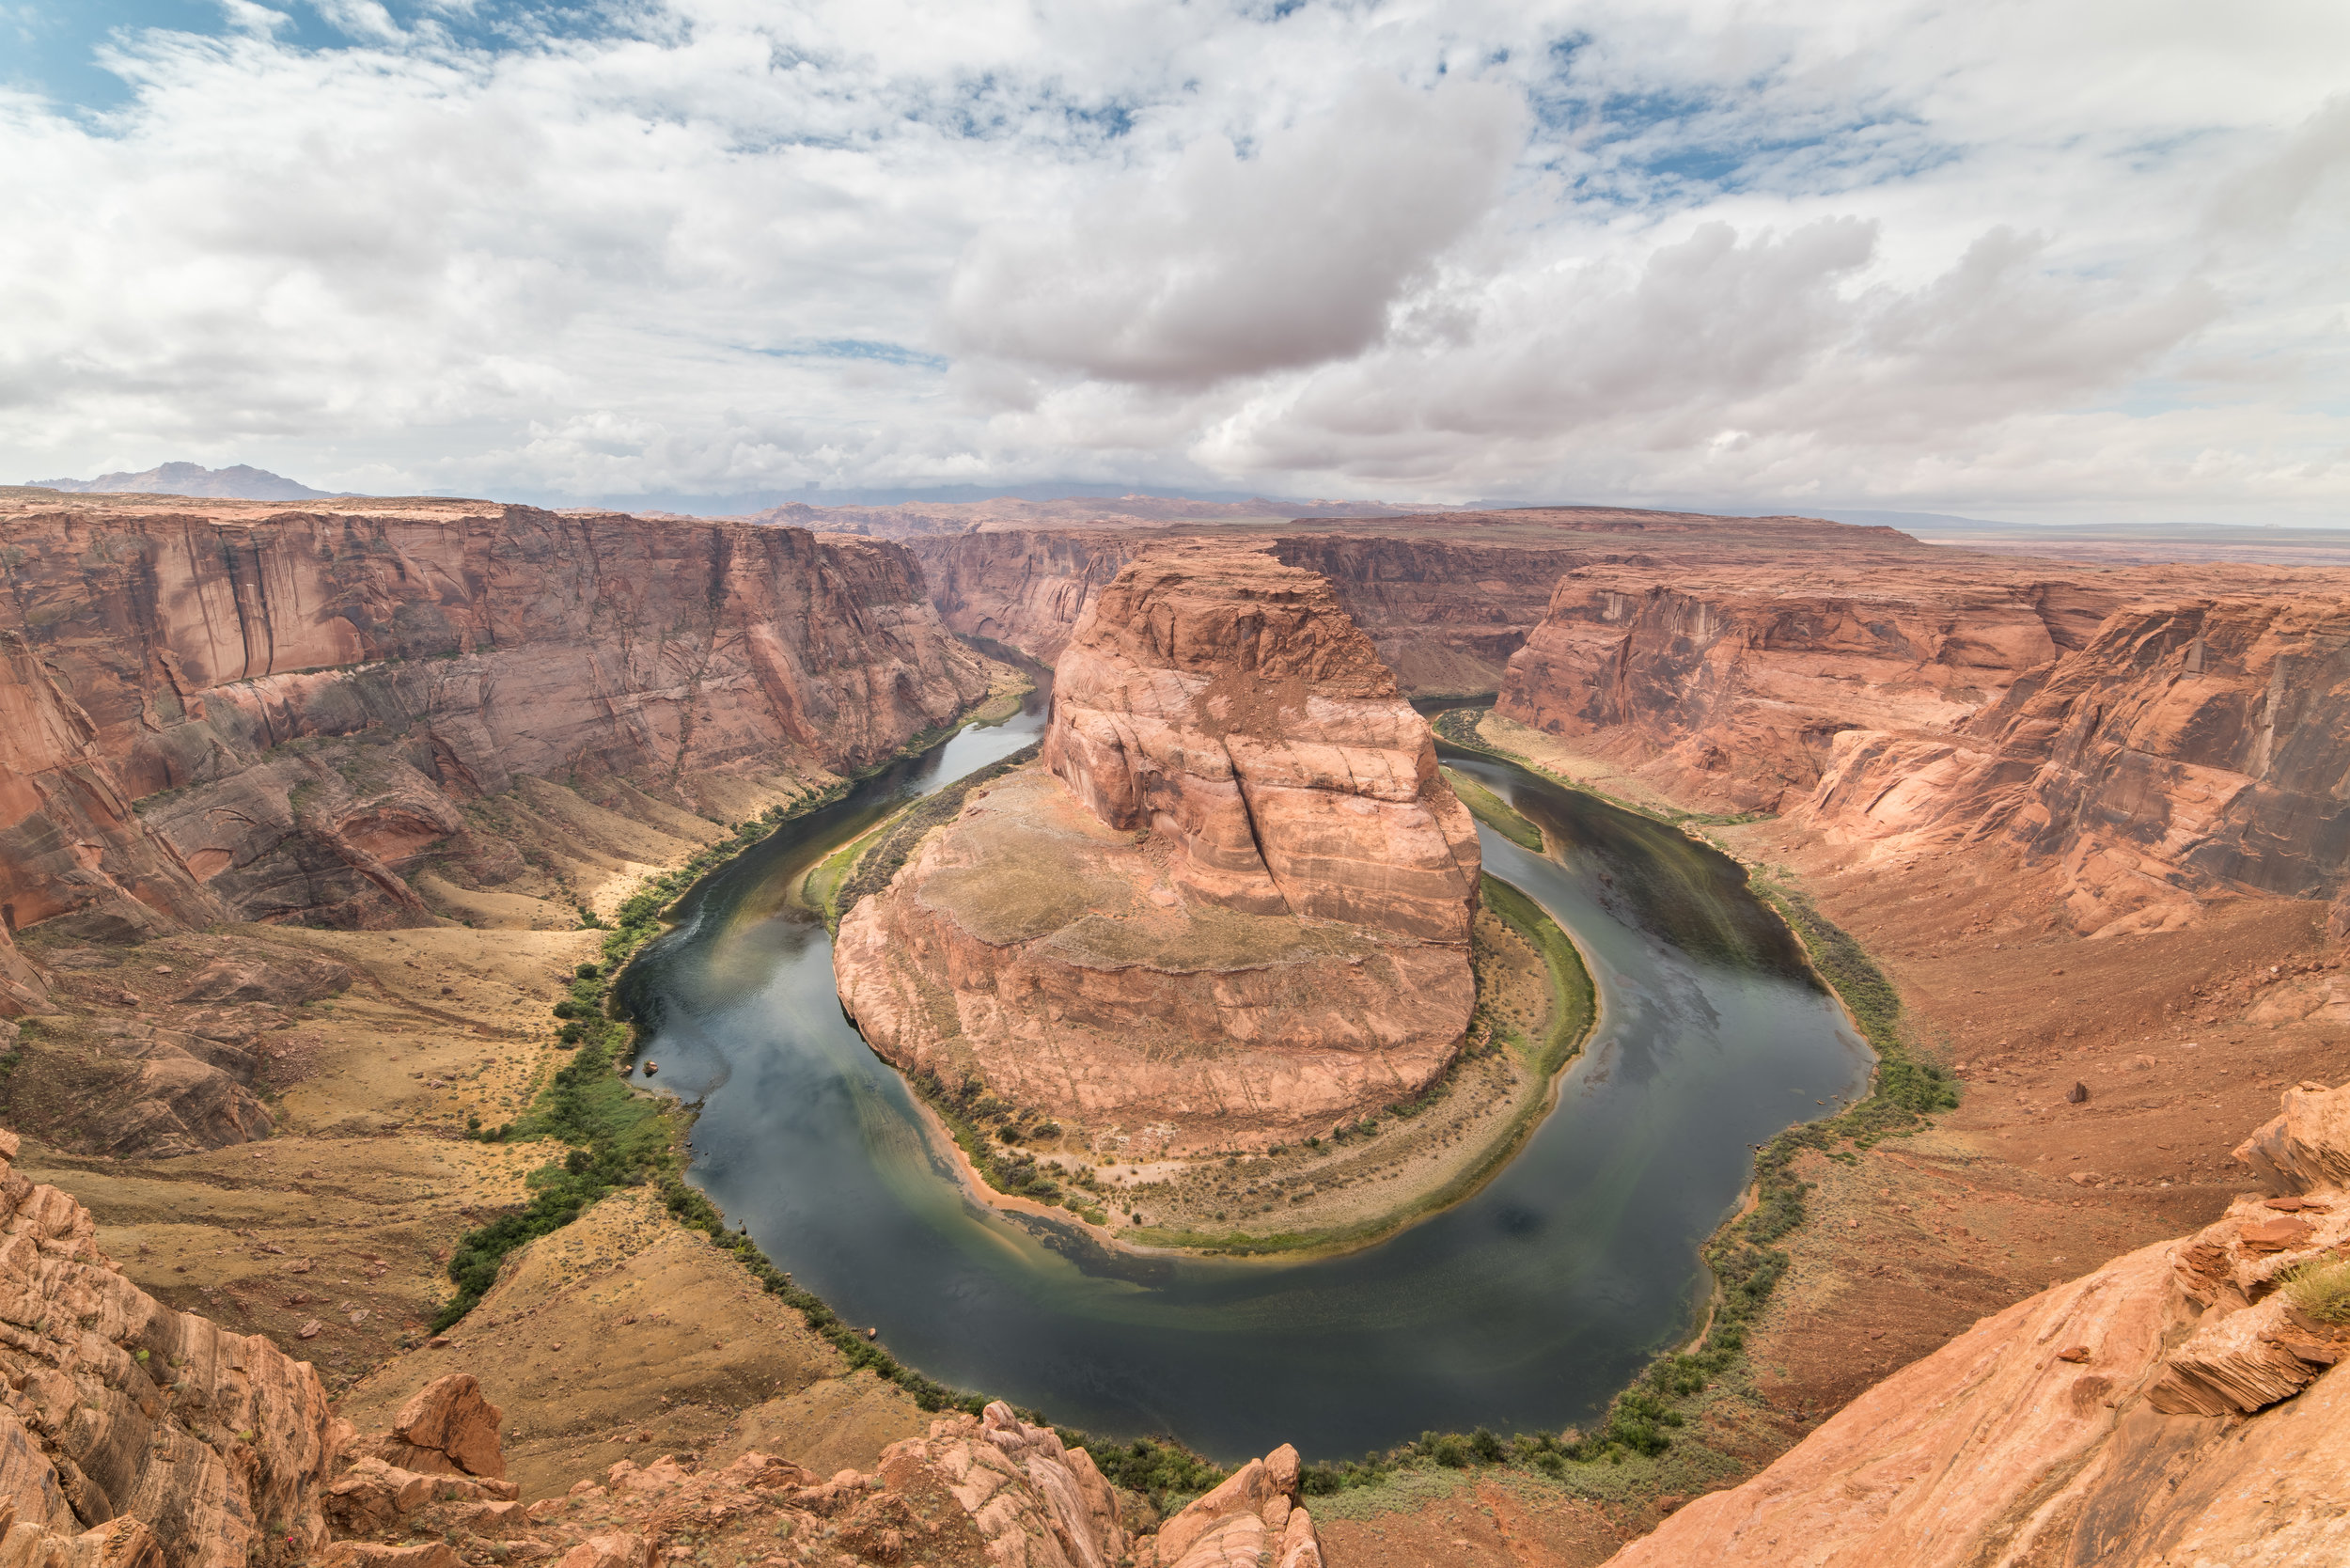 Horseshoe bend is a must see if you are in Page, Arizona! It's absolutely free and just a short hike from the carpark. Just be prepared for the crazy amount of other tourists and have enough water because it can get pretty hot.